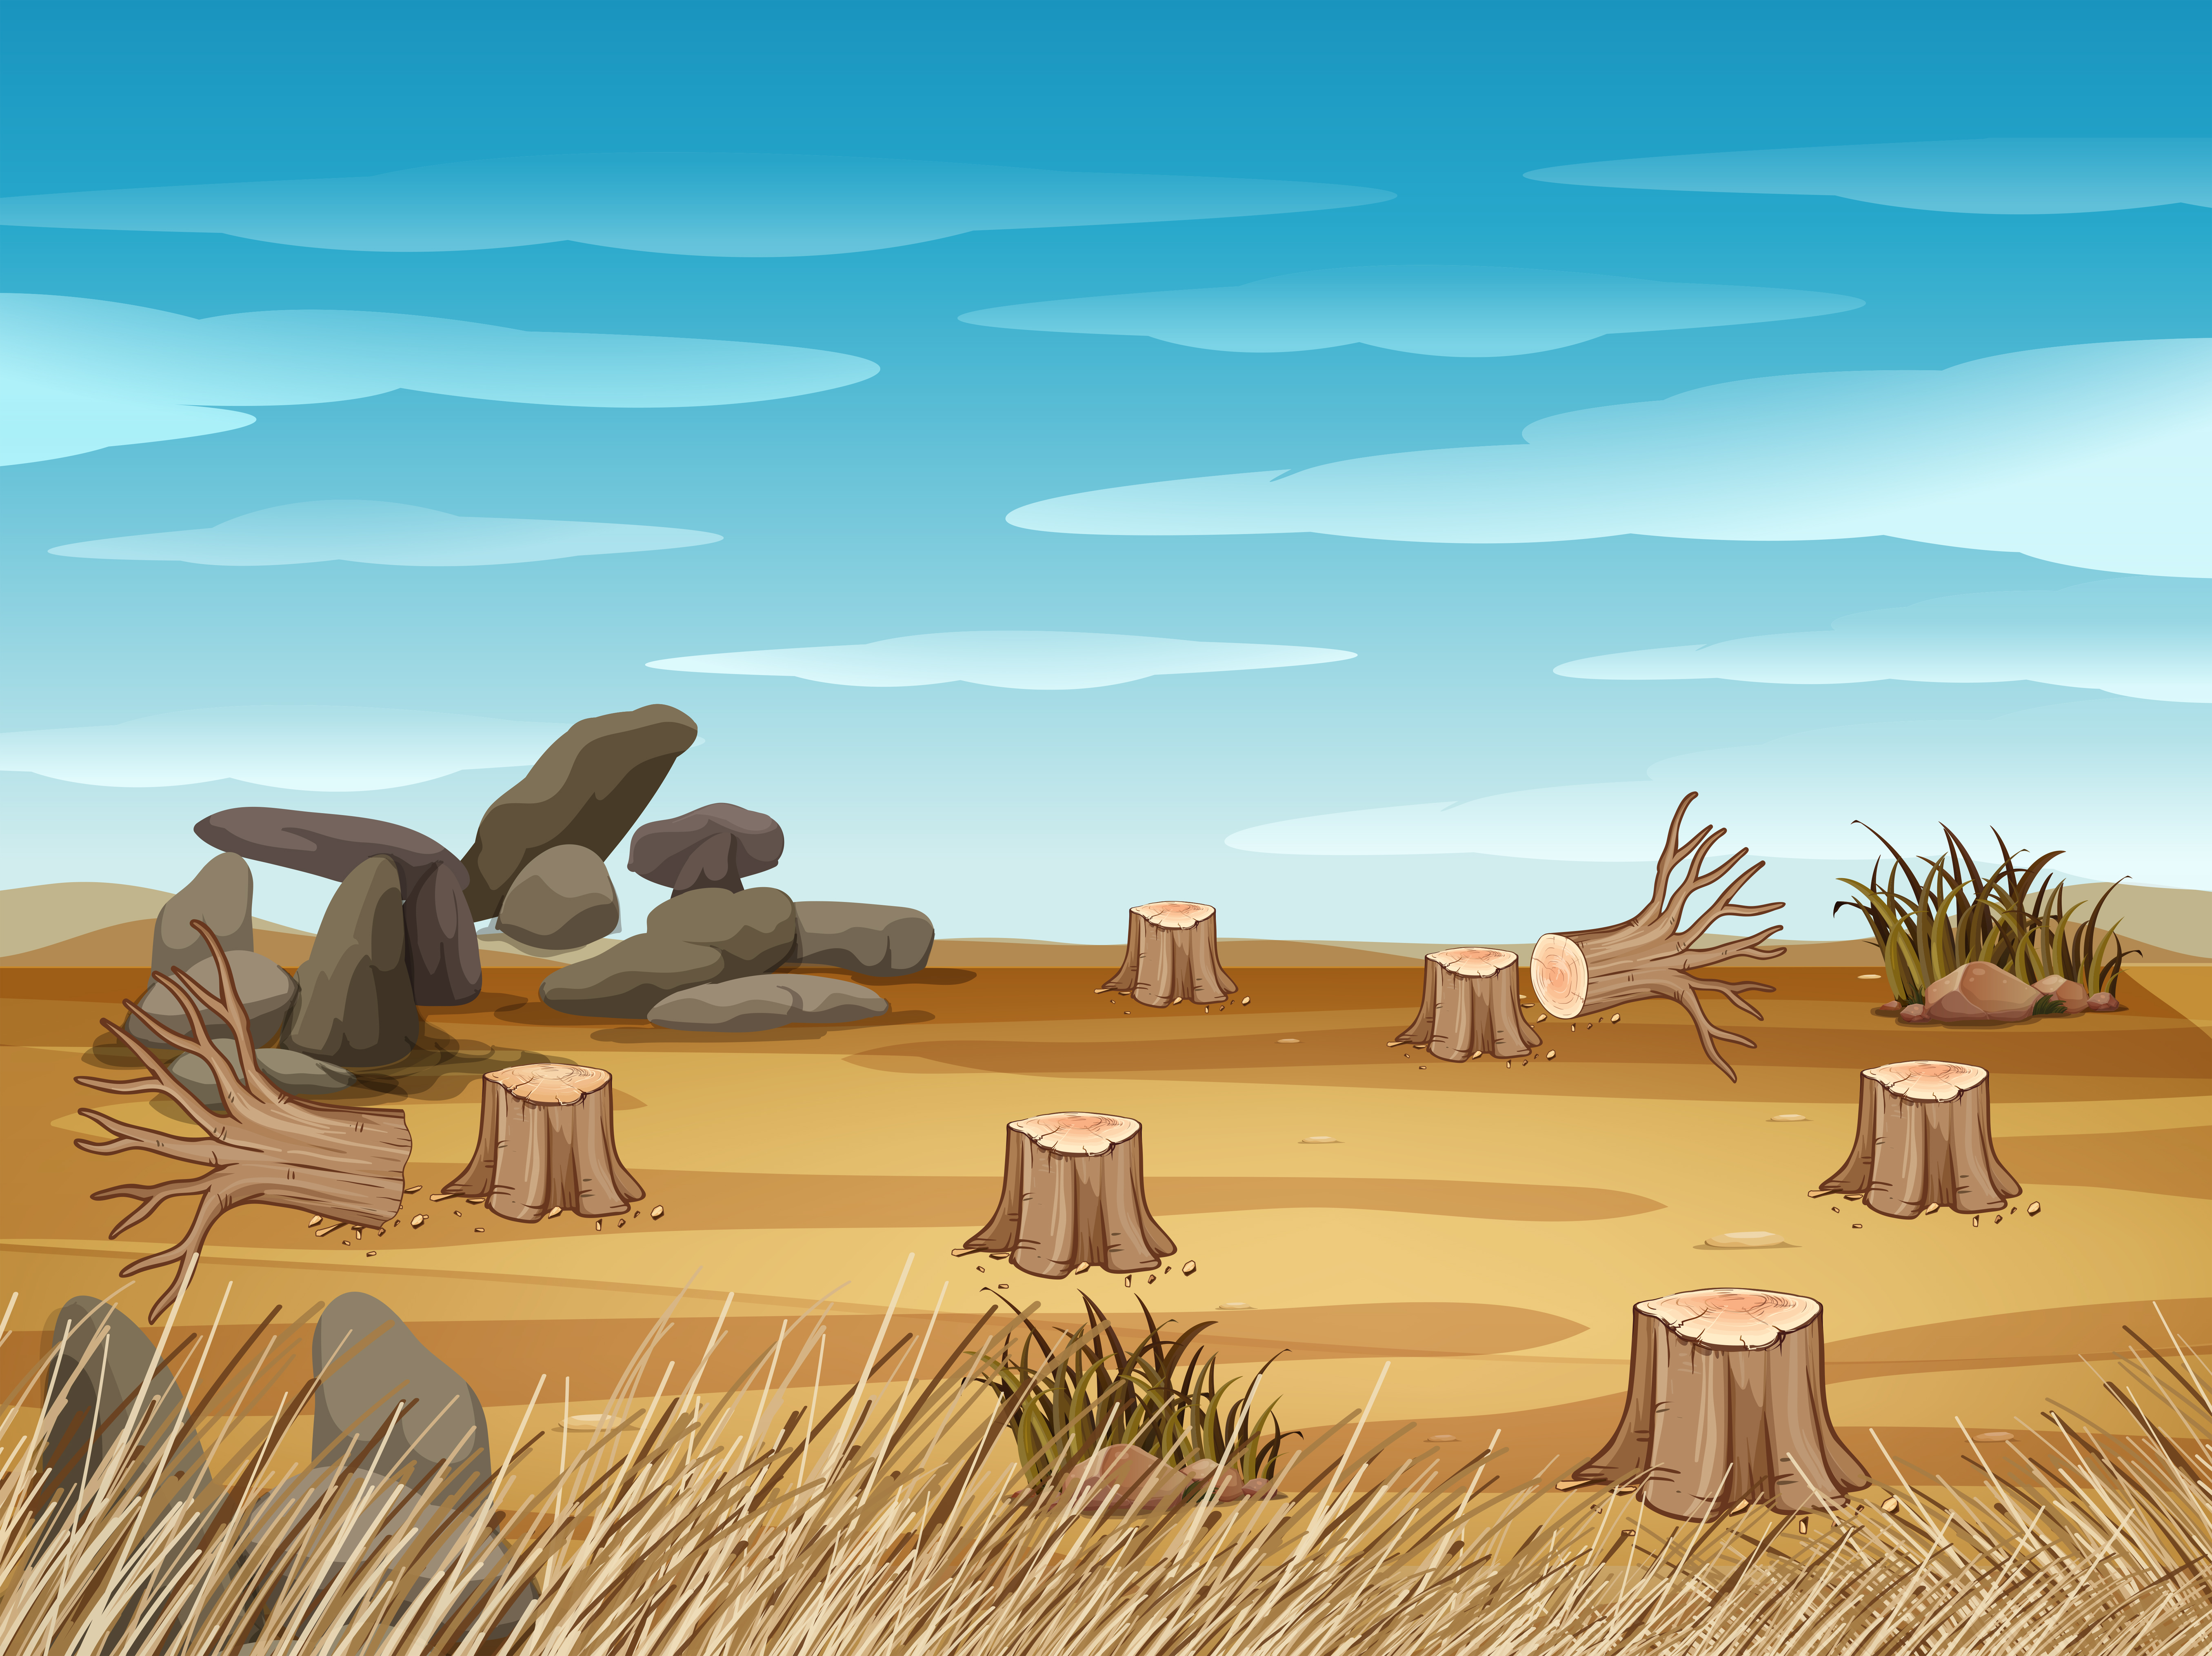 Field With Stump Trees Download Free Vectors Clipart